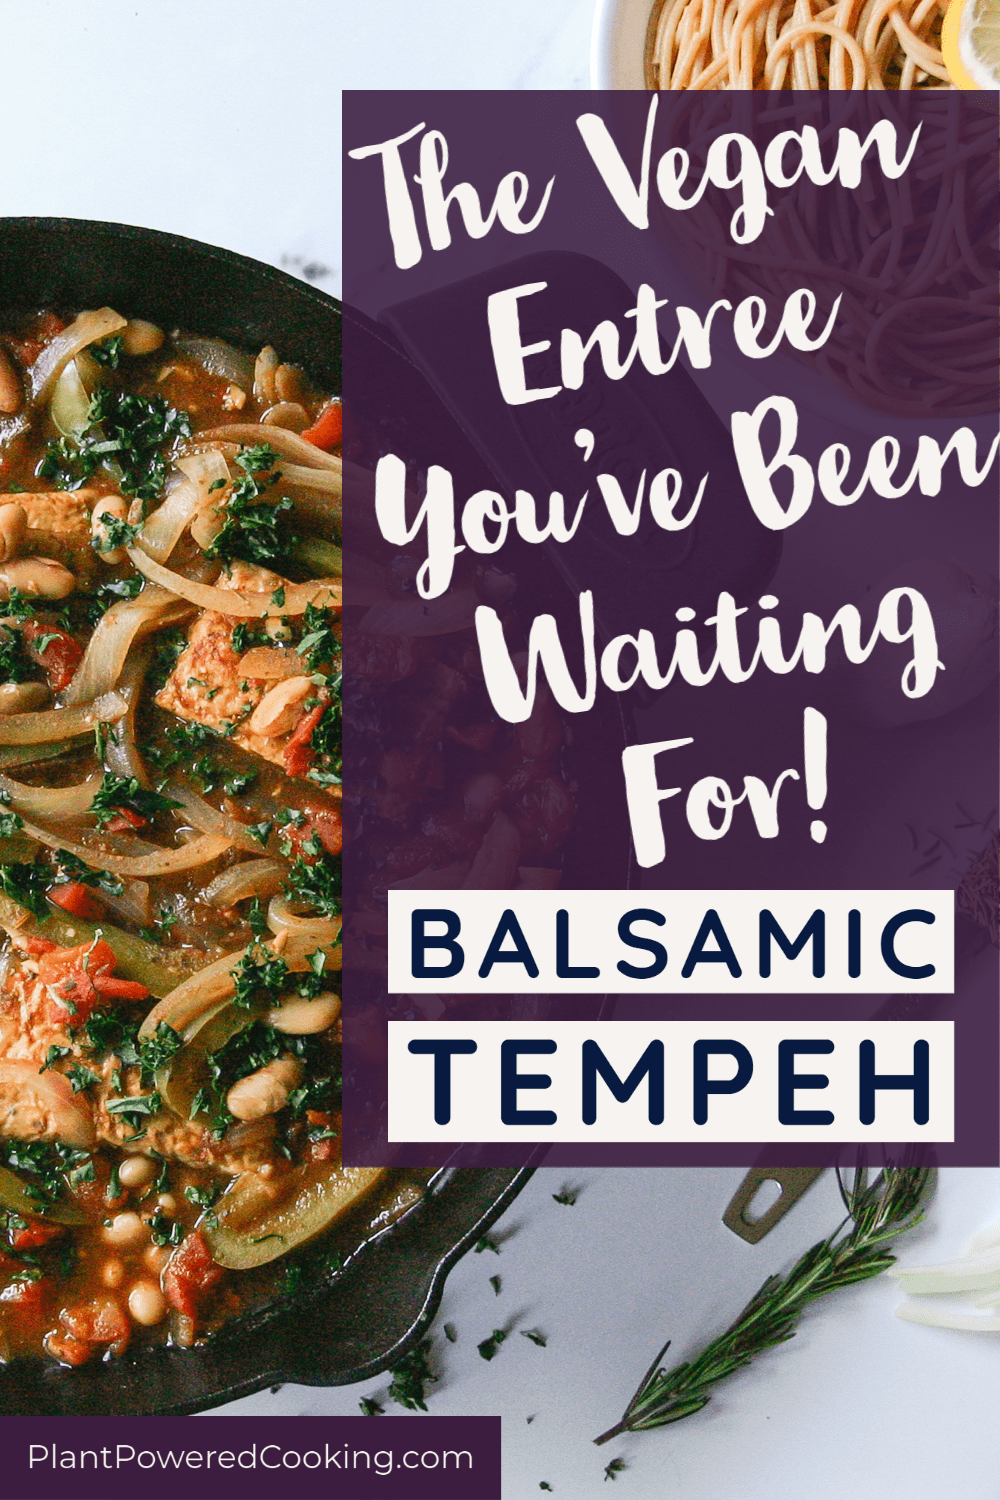 Large skillet full of balsamic tempeh recipe topped with fresh herbs